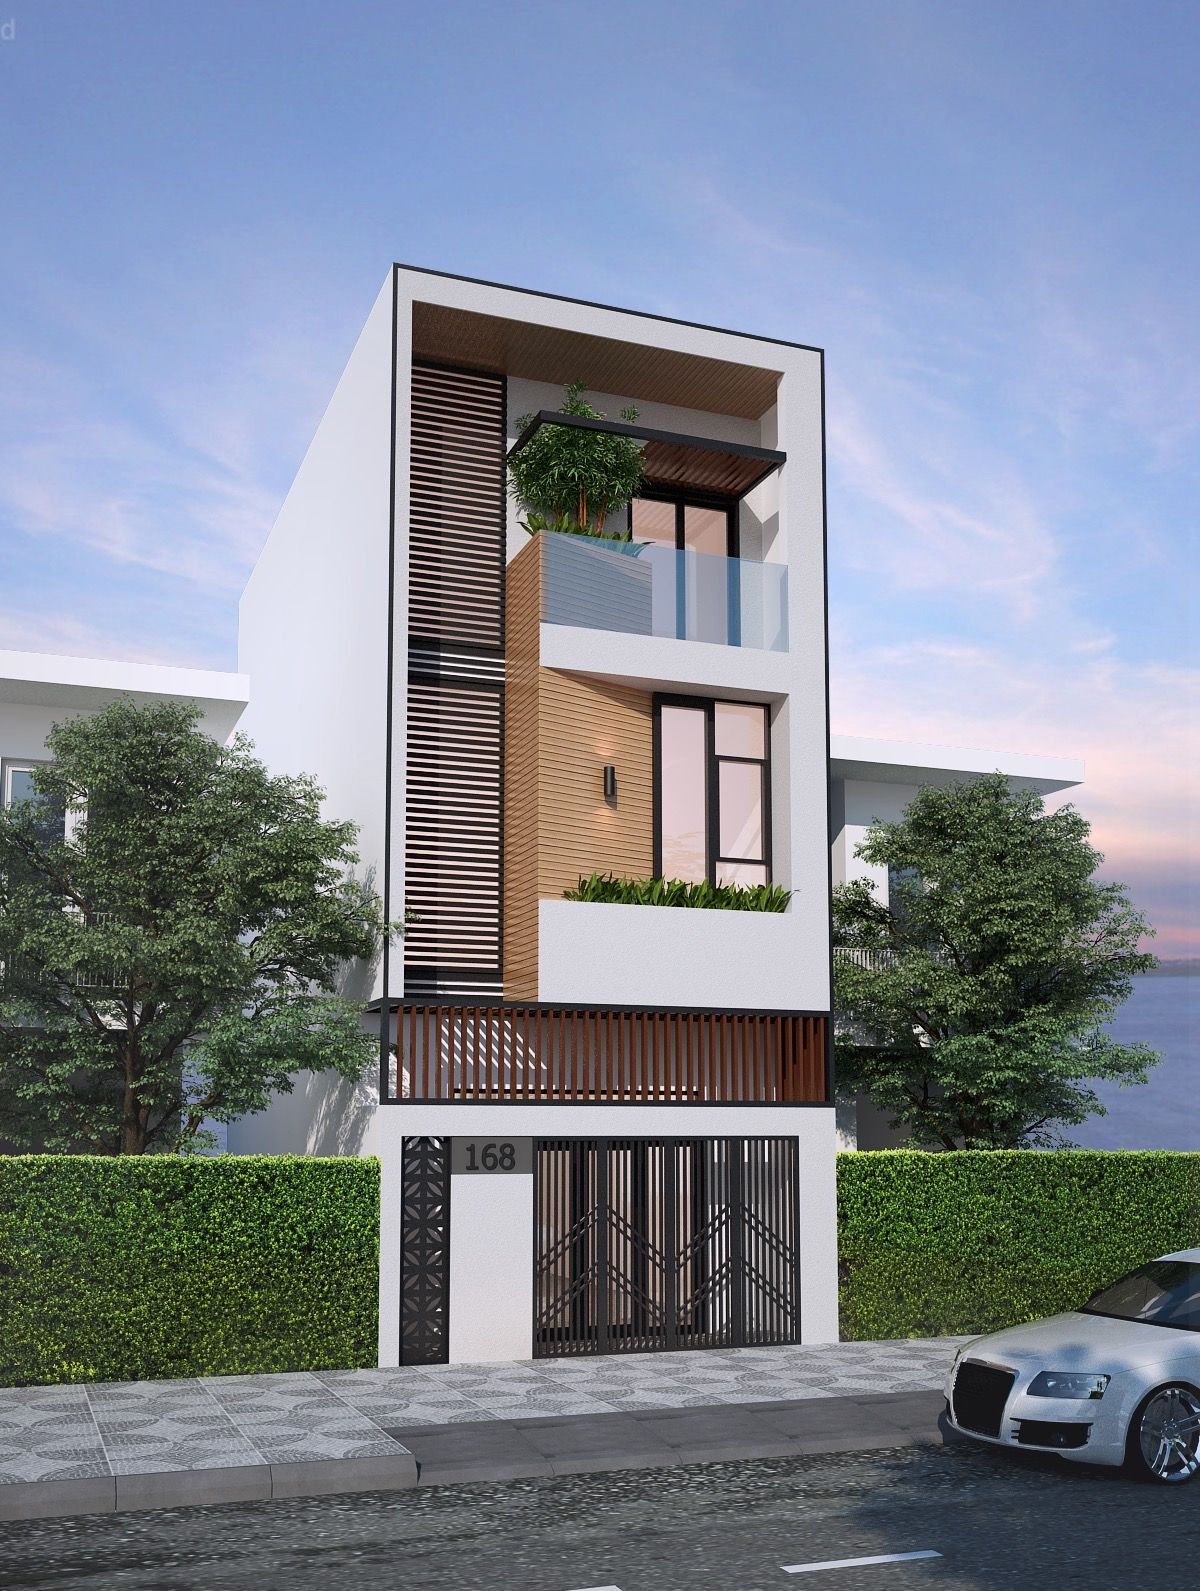 50 Narrow Lot Houses That Transform A Skinny Exterior Into Something Special House Designs Exterior Narrow House Designs House Front Design